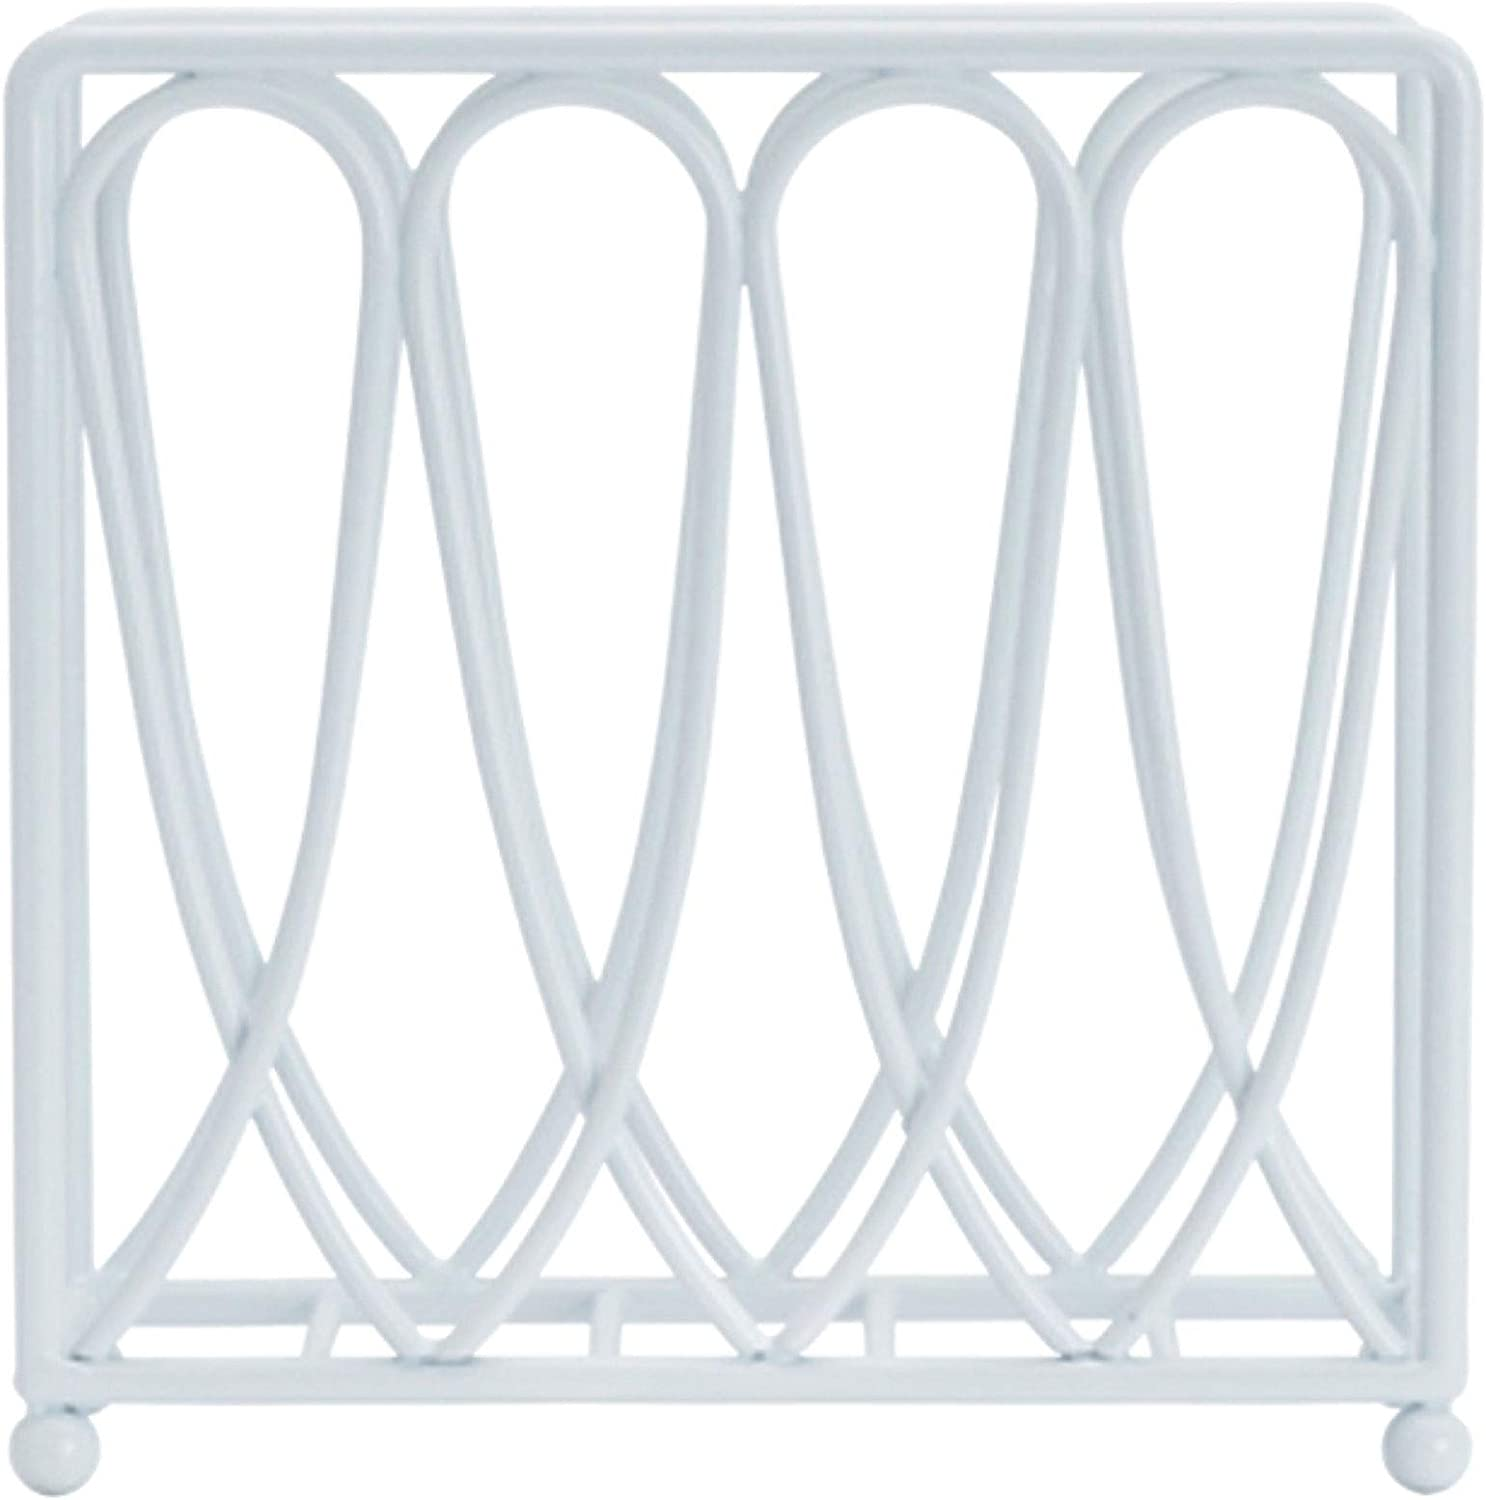 White 7 inch Gourmet Basics by Mikasa Victorian Loop Napkin Holder